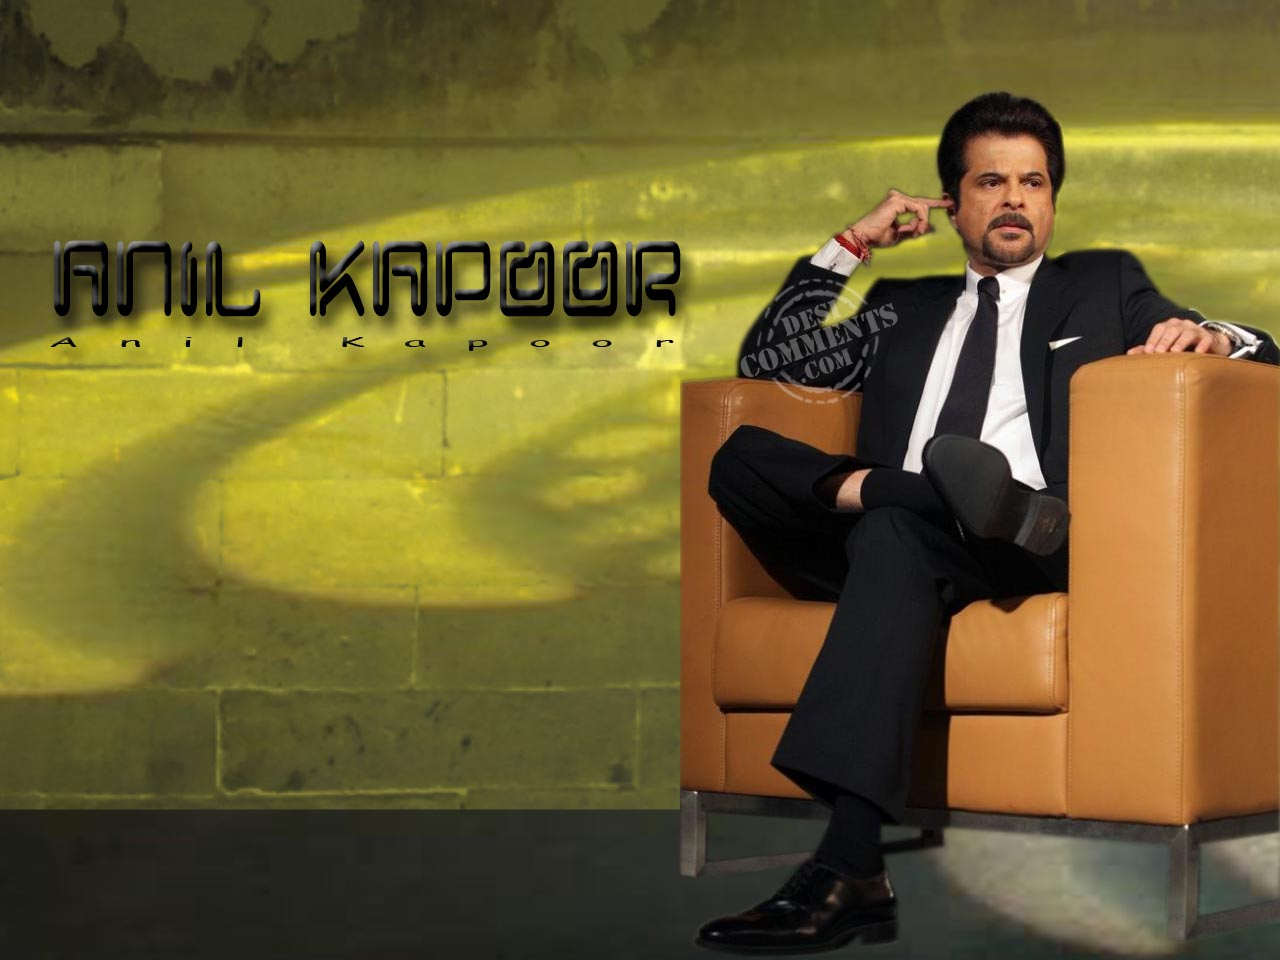 Deep Quotes Wallpapers Anil Kapoor Wallpapers Bollywood Wallpapers